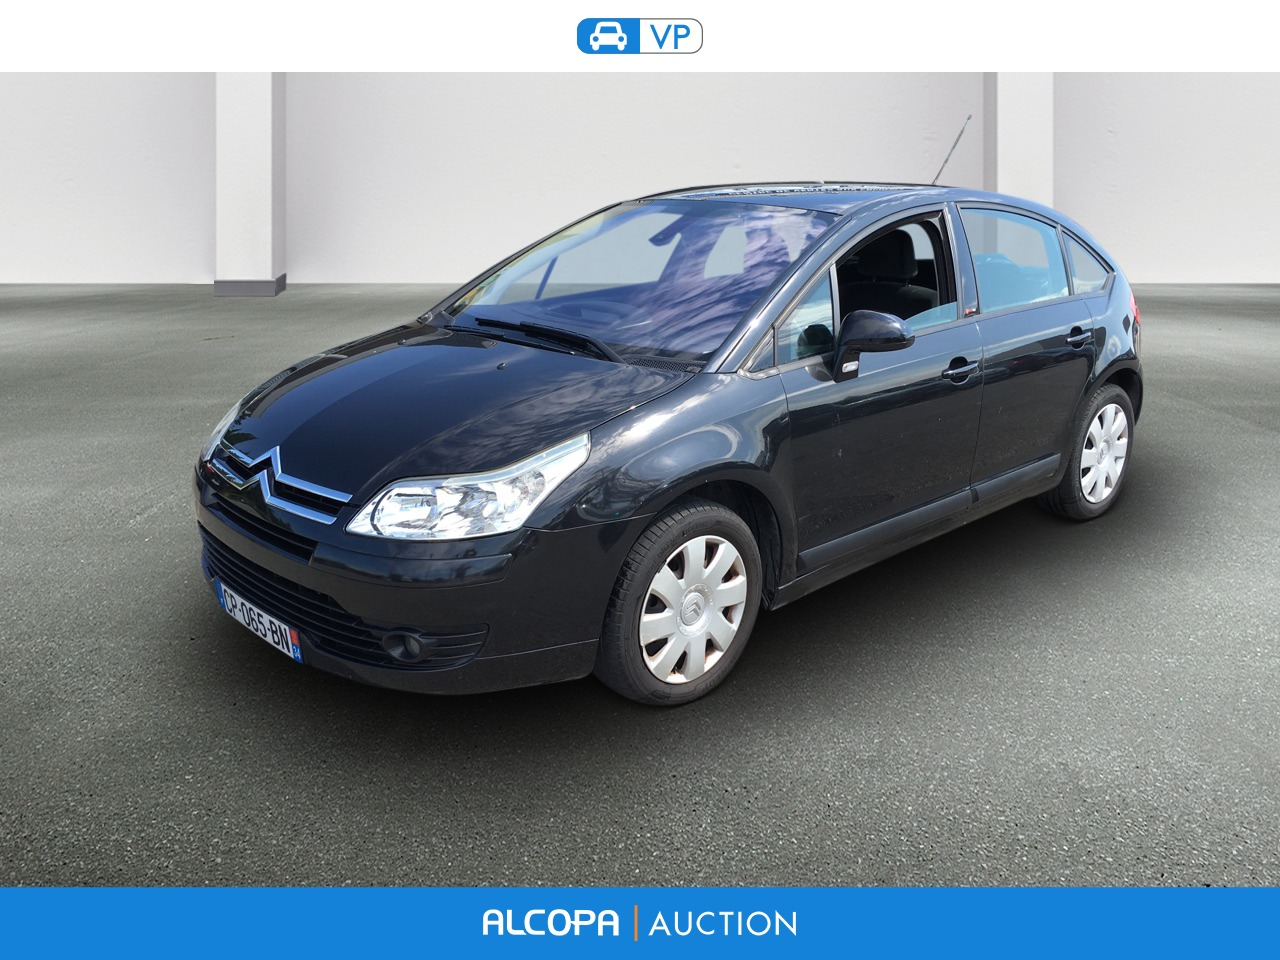 citroen c4 c4 hdi 92 virgin mega alcopa auction. Black Bedroom Furniture Sets. Home Design Ideas